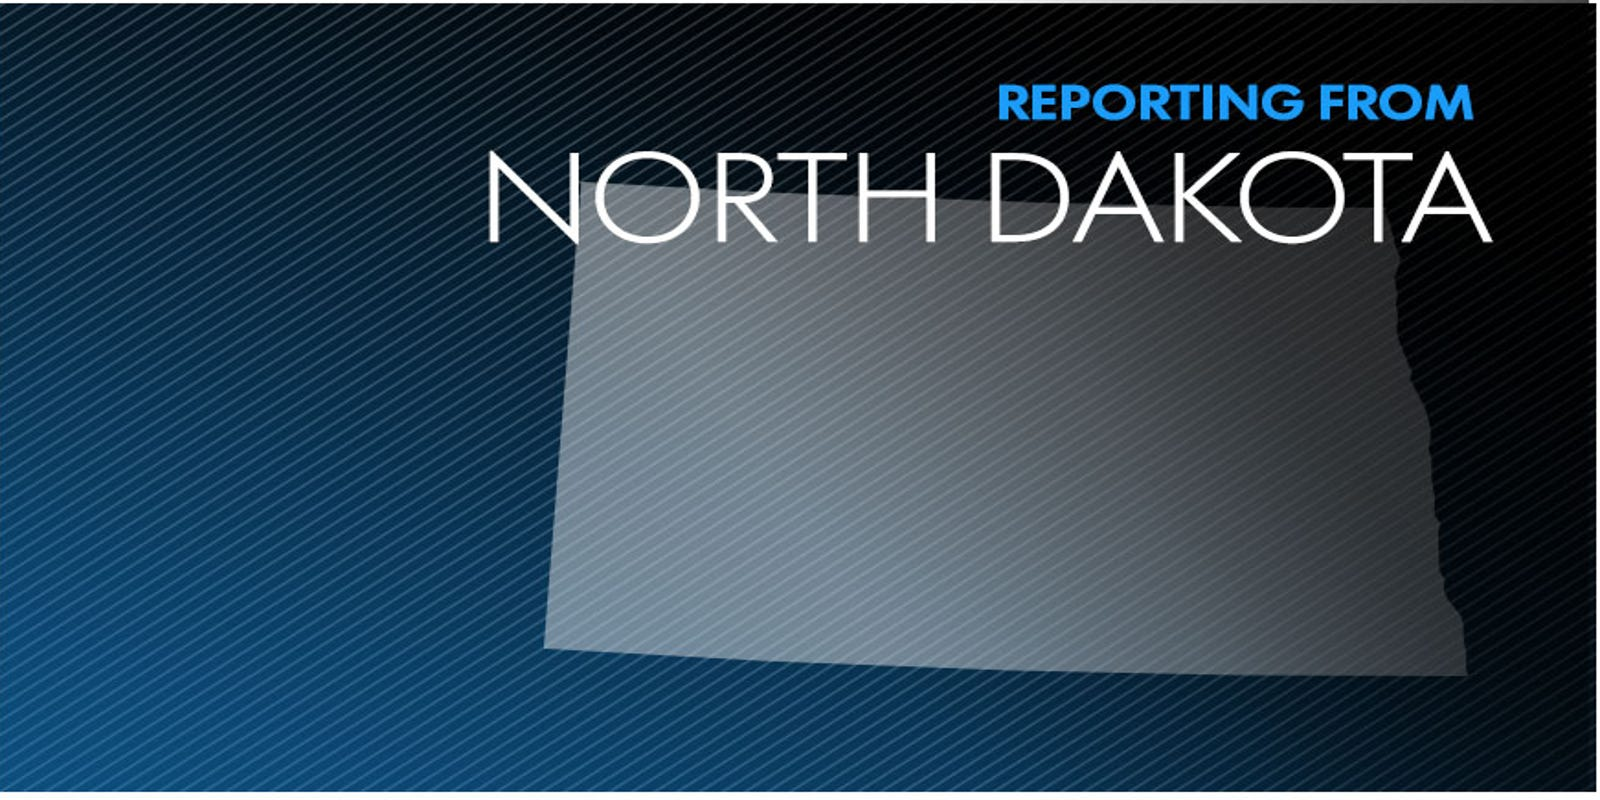 Republican state legislature candidate in North Dakota who died of COVID-19 in October wins election